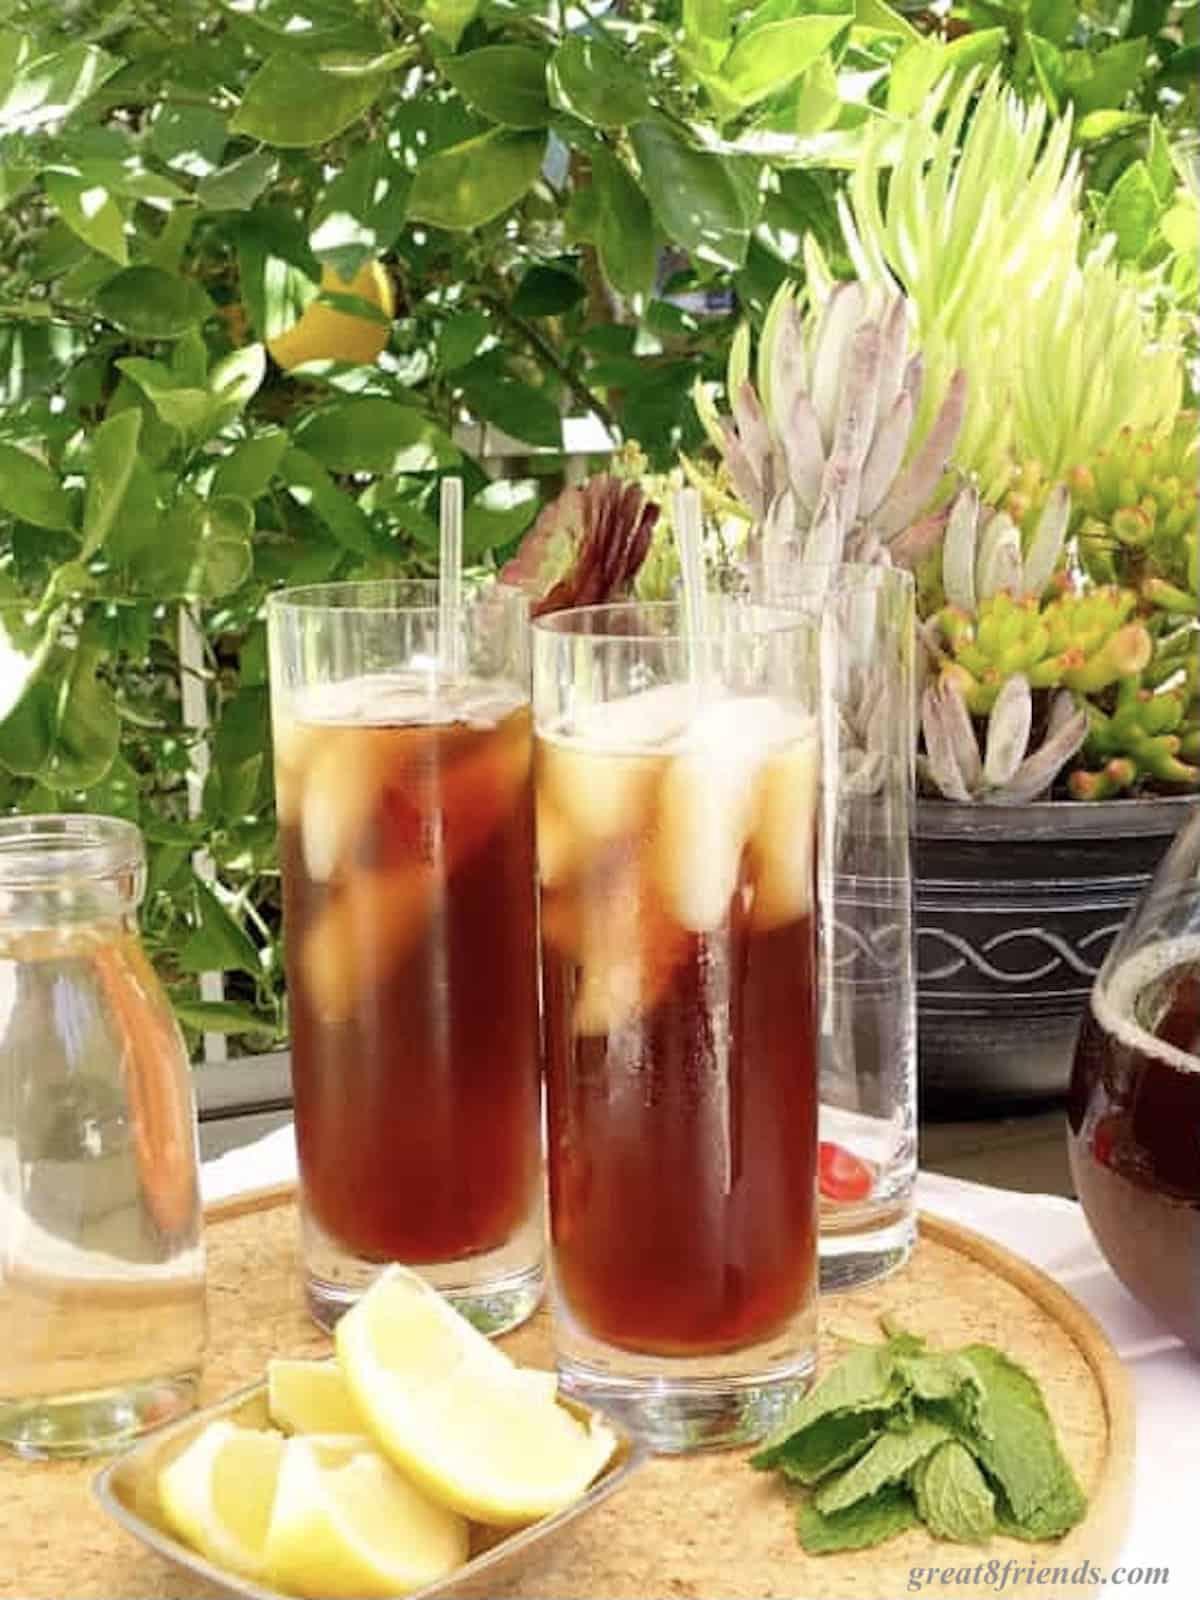 Two glasses of iced tea on a tray with some lemon wedges and mint leaves.